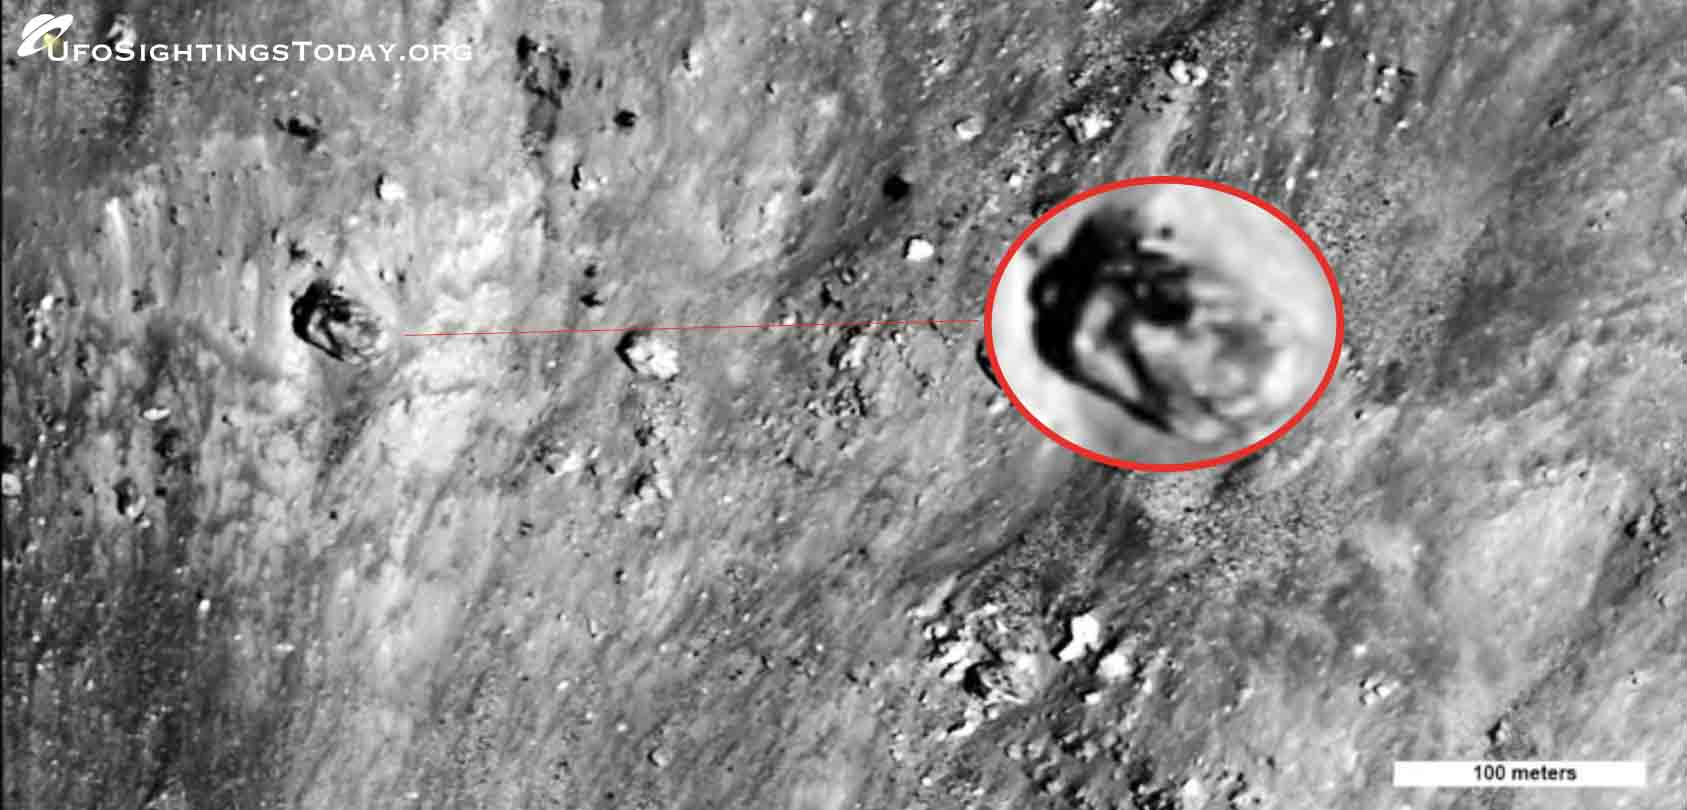 ancient tank discovered on the moon